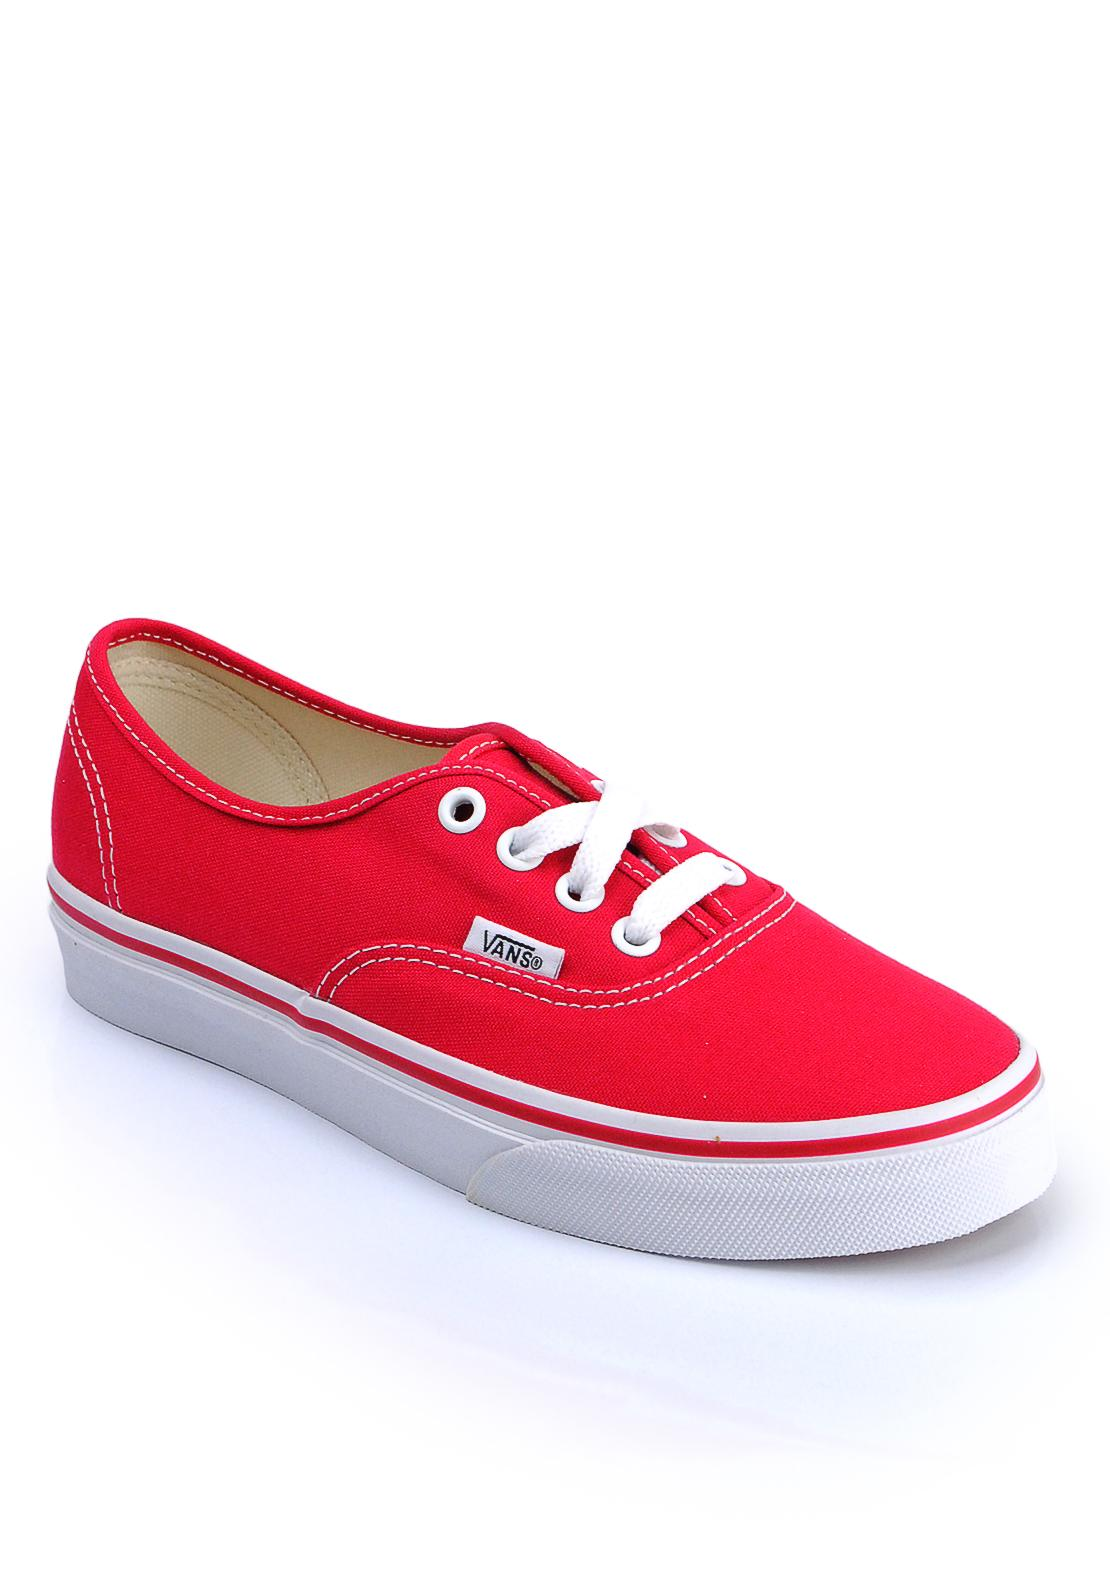 Vans Authentic Trainers, Red